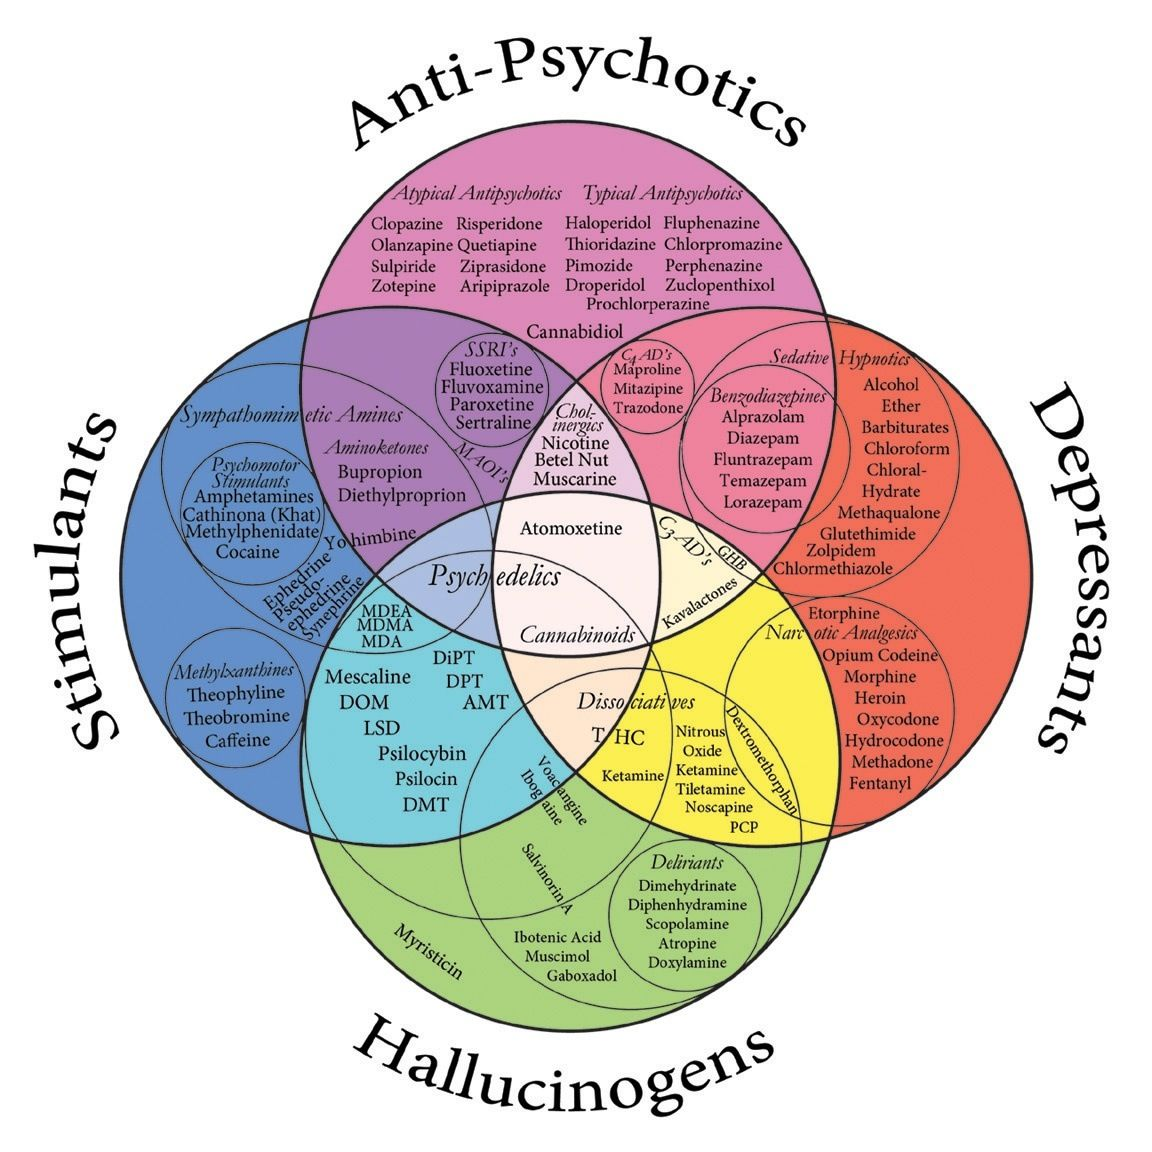 Medical interpreting medications diagram a visual representation psychoactive drugs are chemical substances that affect the brain these medications can affect out central nervous system and change the way we feel ccuart Gallery